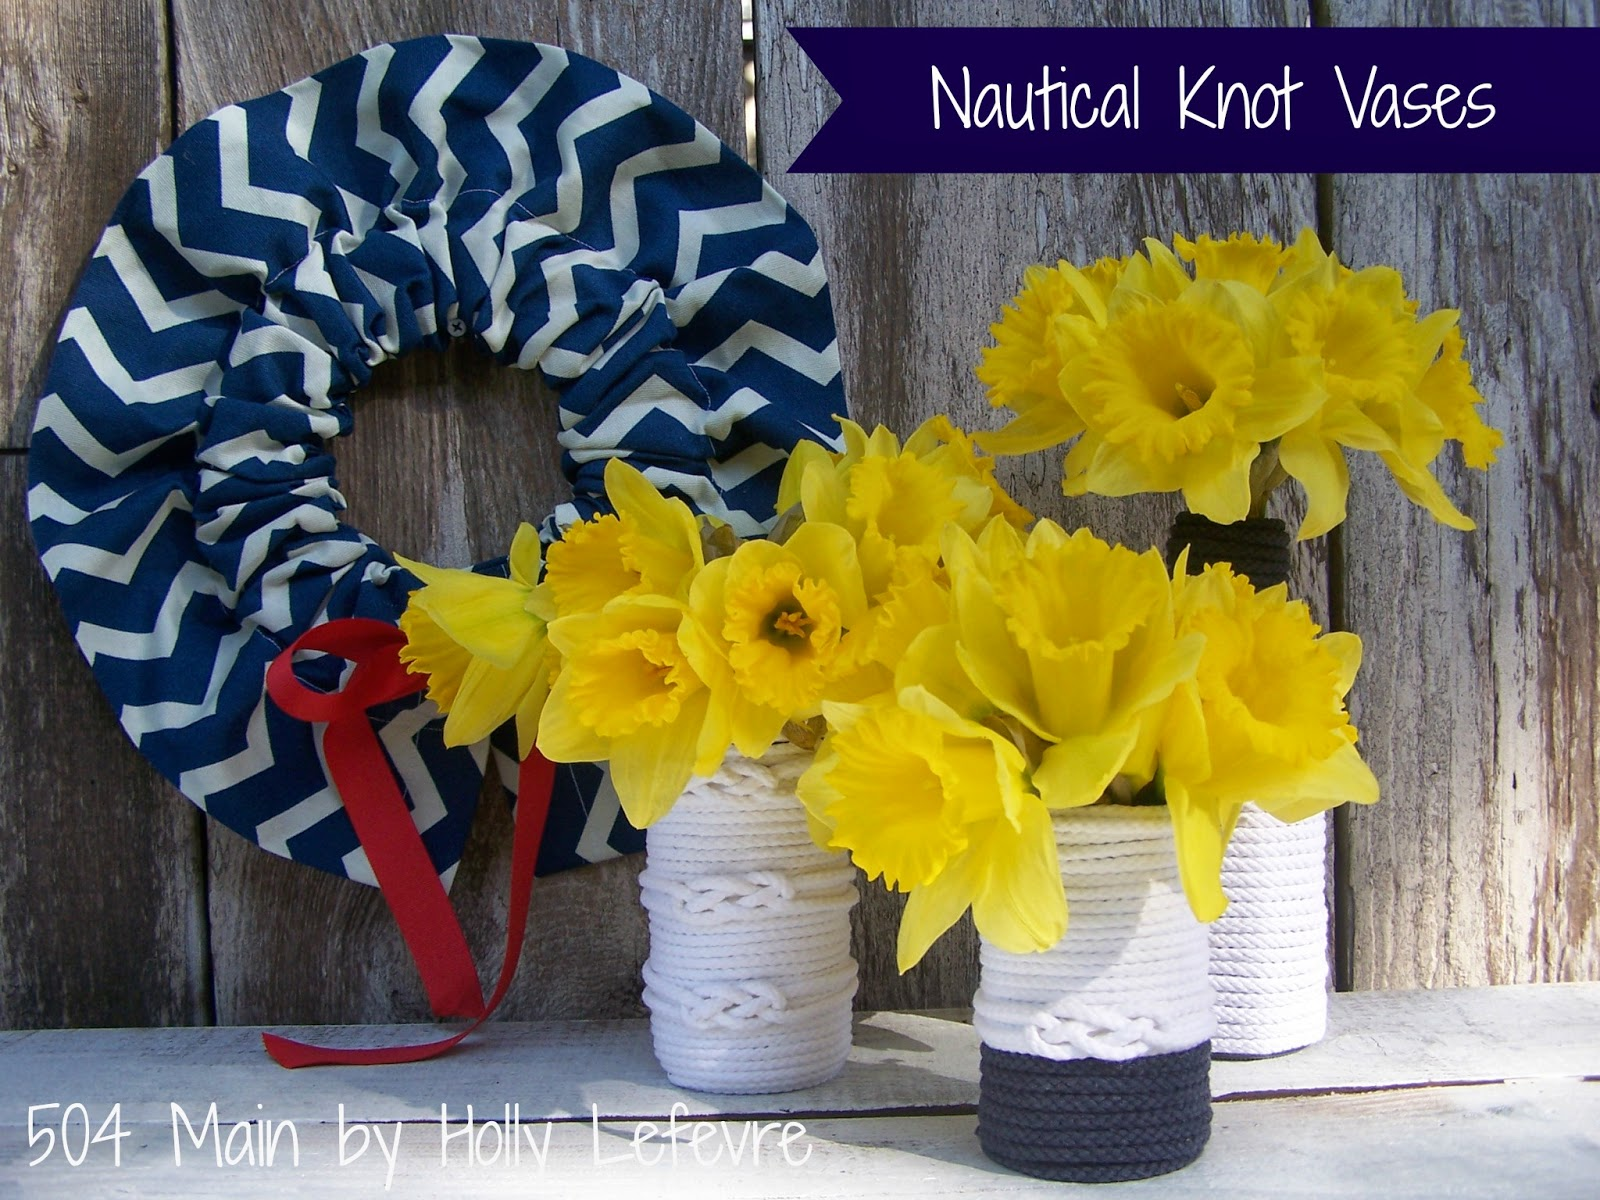 Nautical Knot Vases from 504 Main